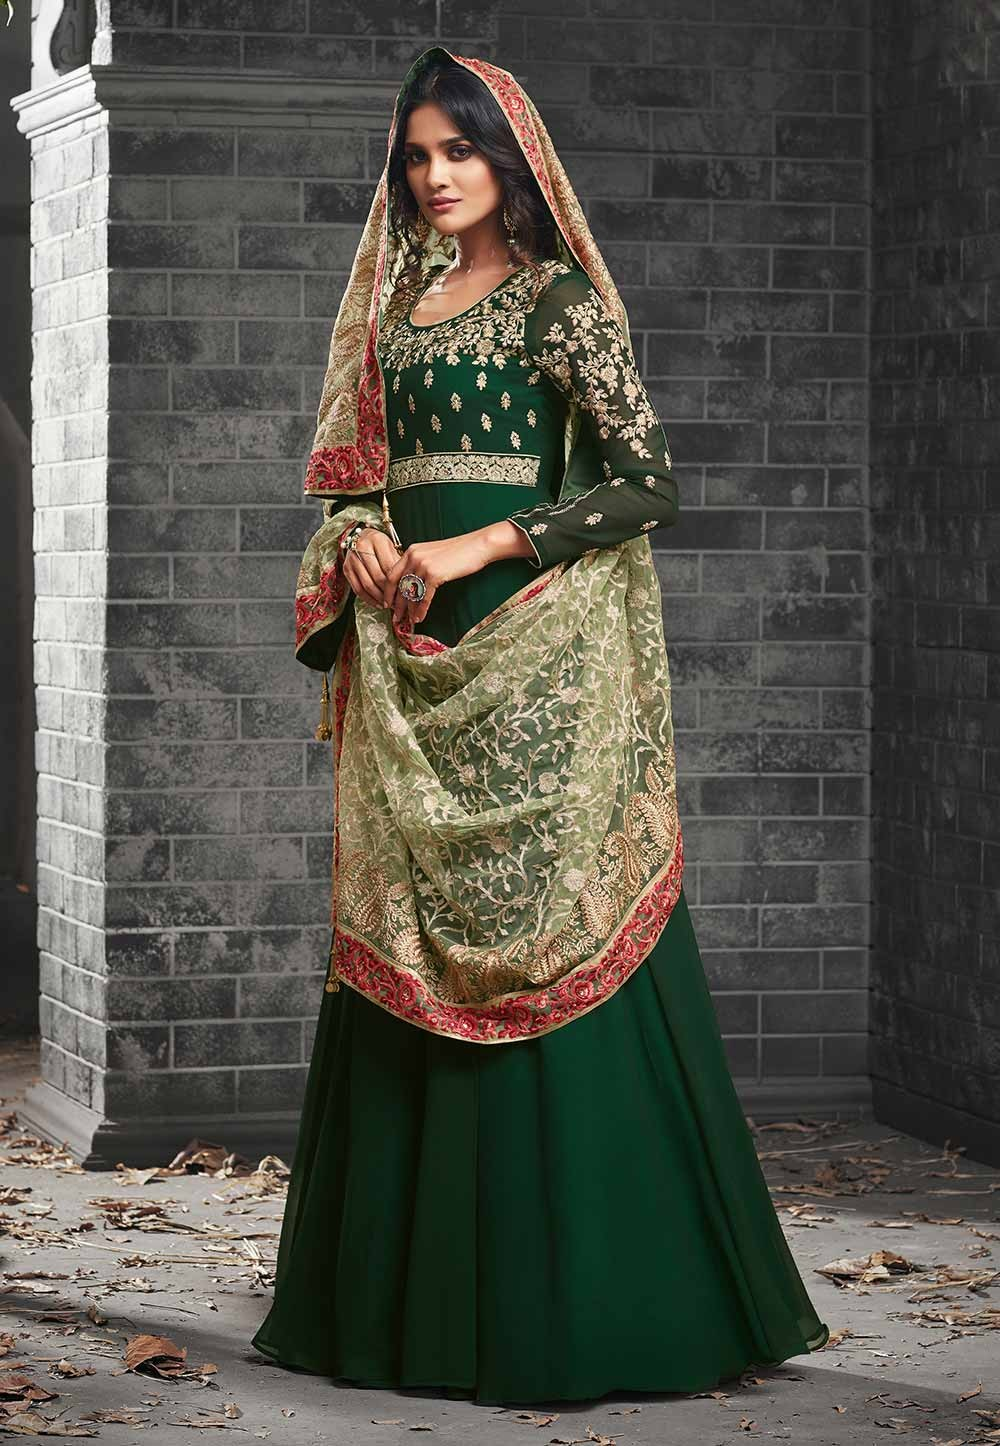 Astounding Green Color Georgette Anarkali Salwar Kameez in Embroidery Work